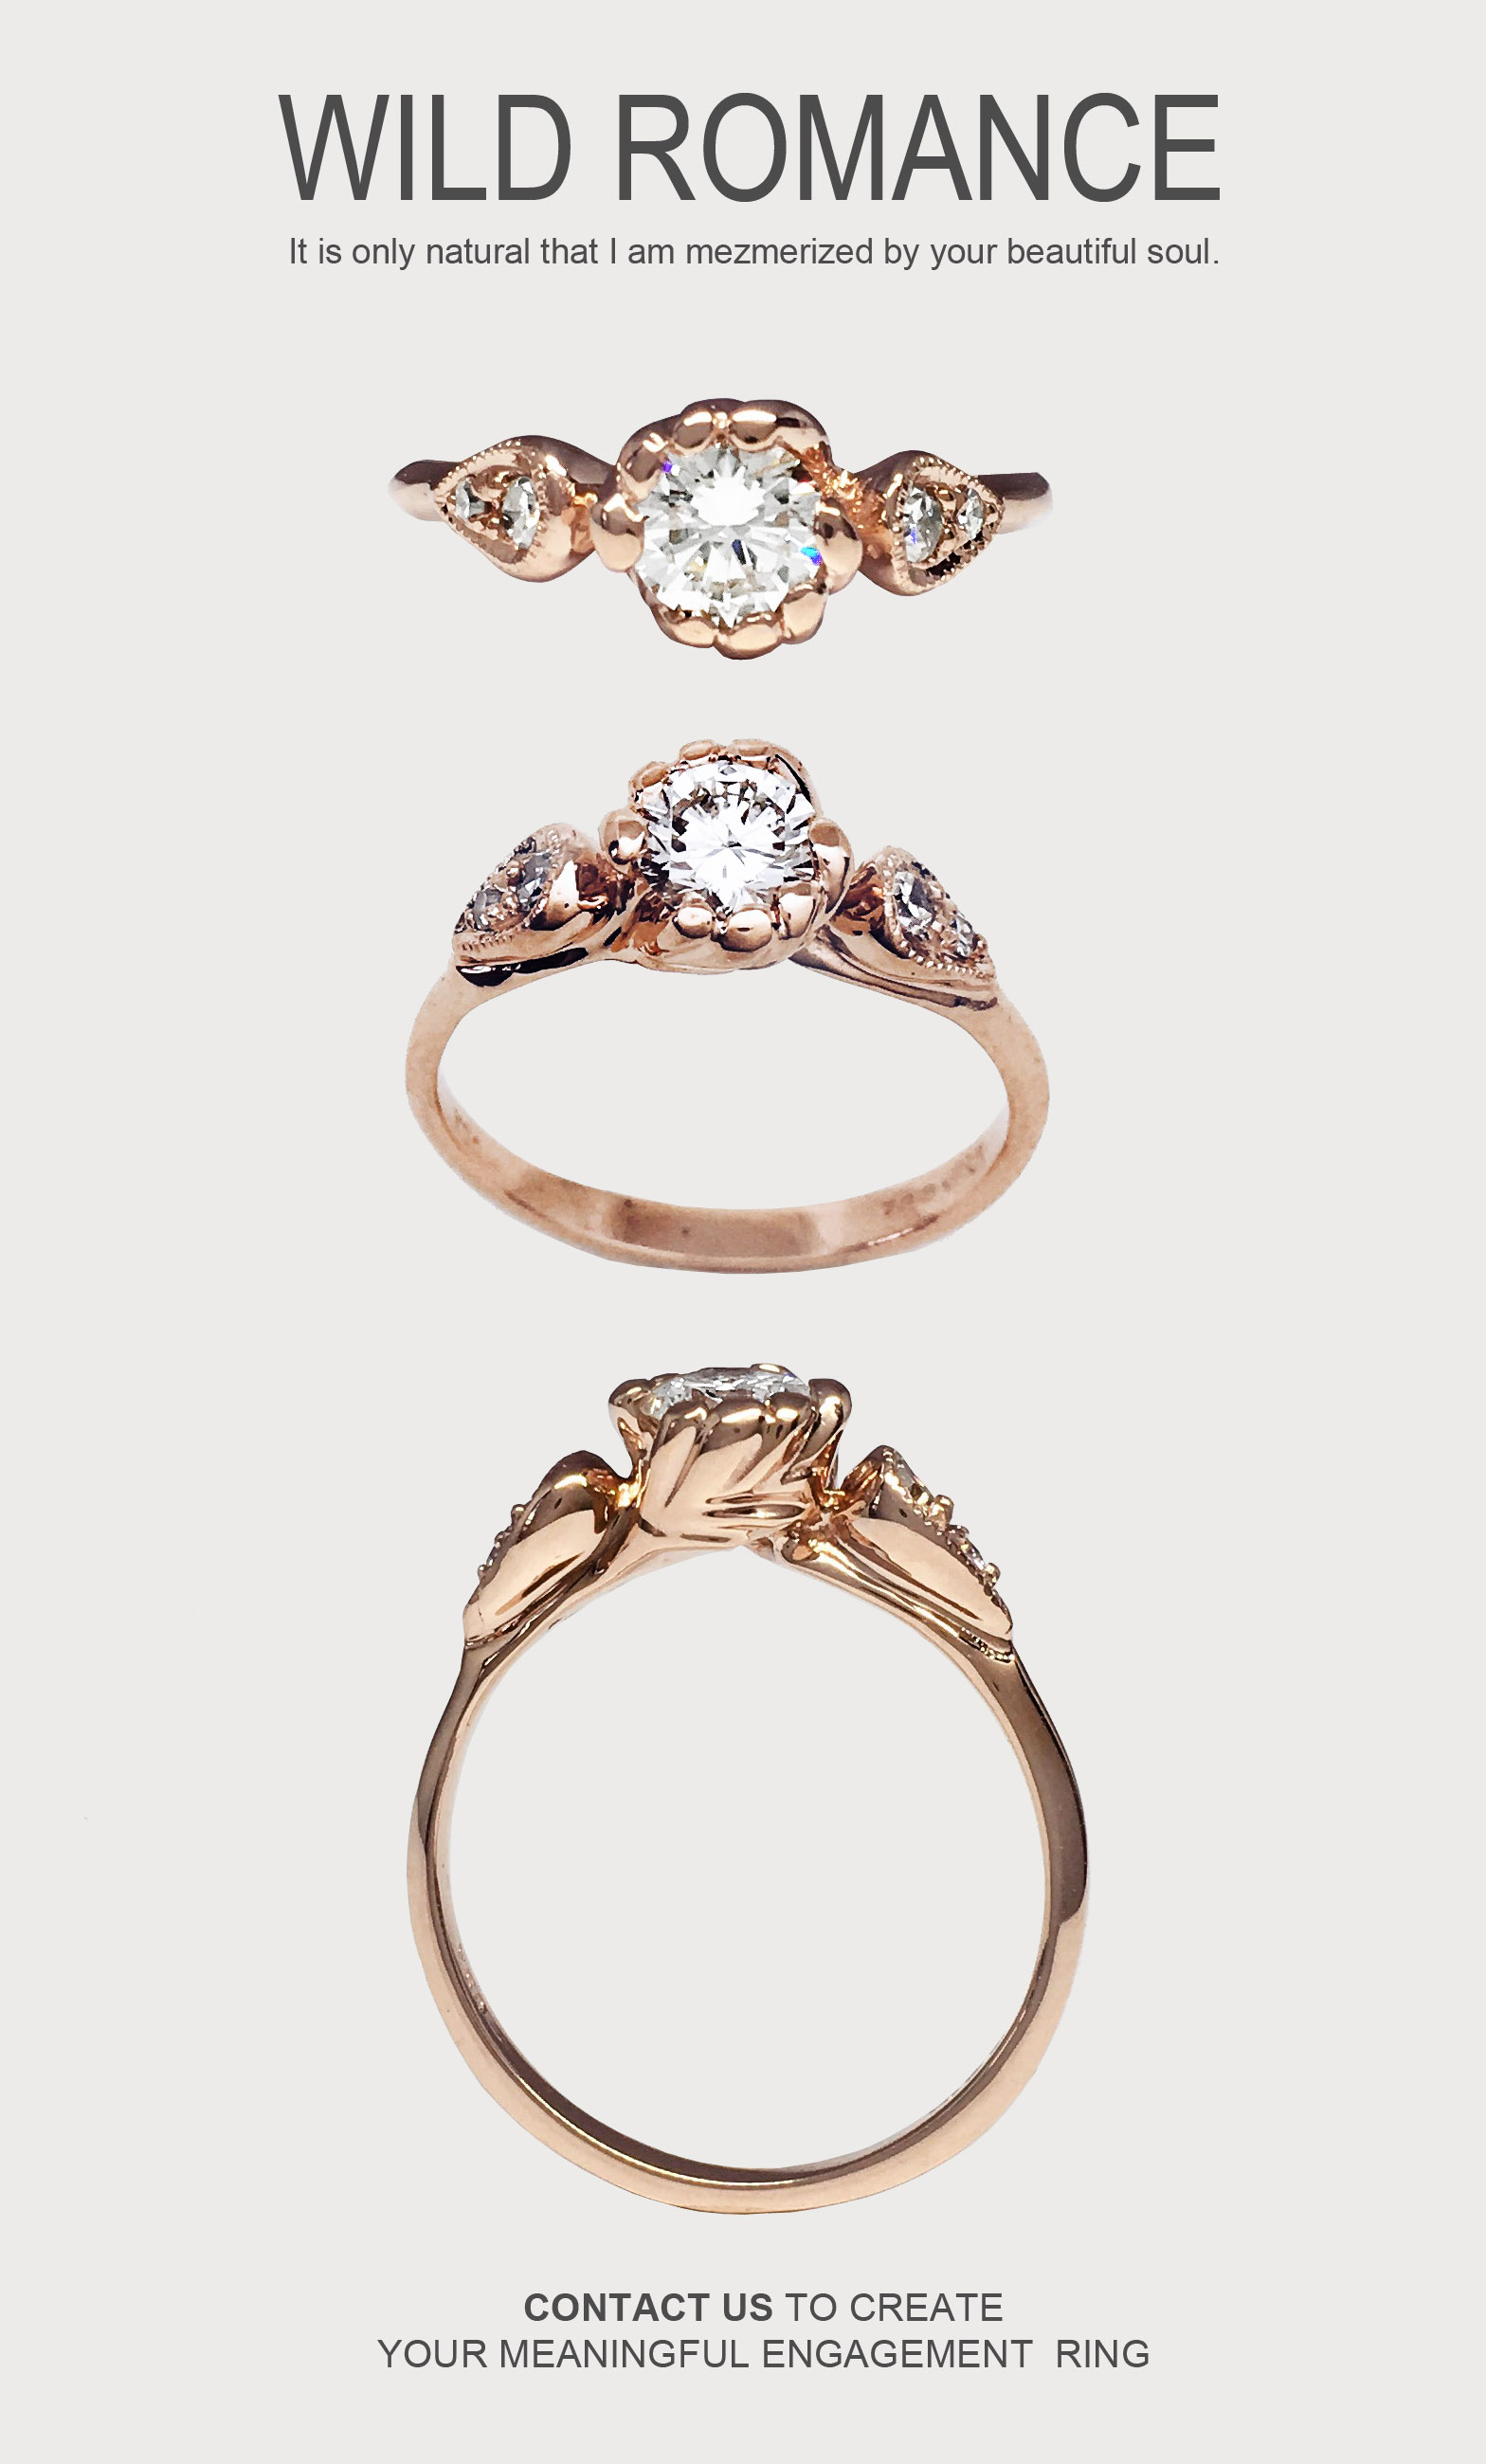 Custom Unique Engagement Rings and Wedding Bands